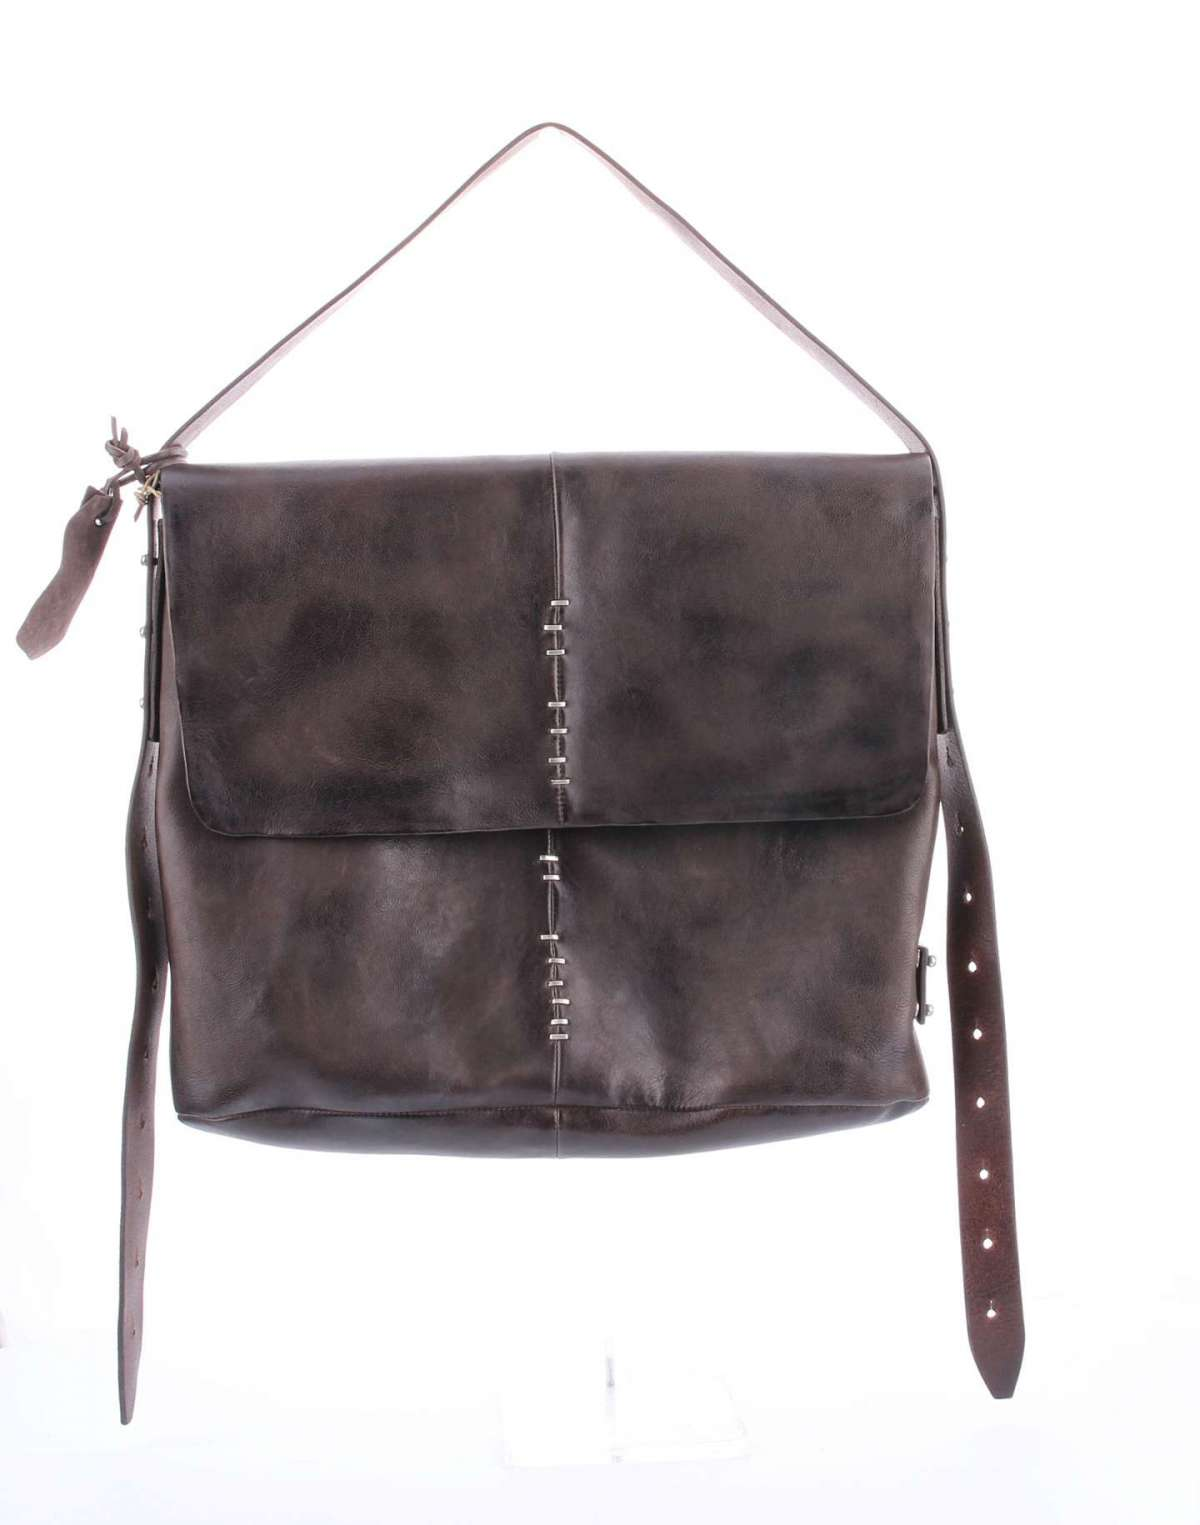 Shoulder bag con patta A.S. 98